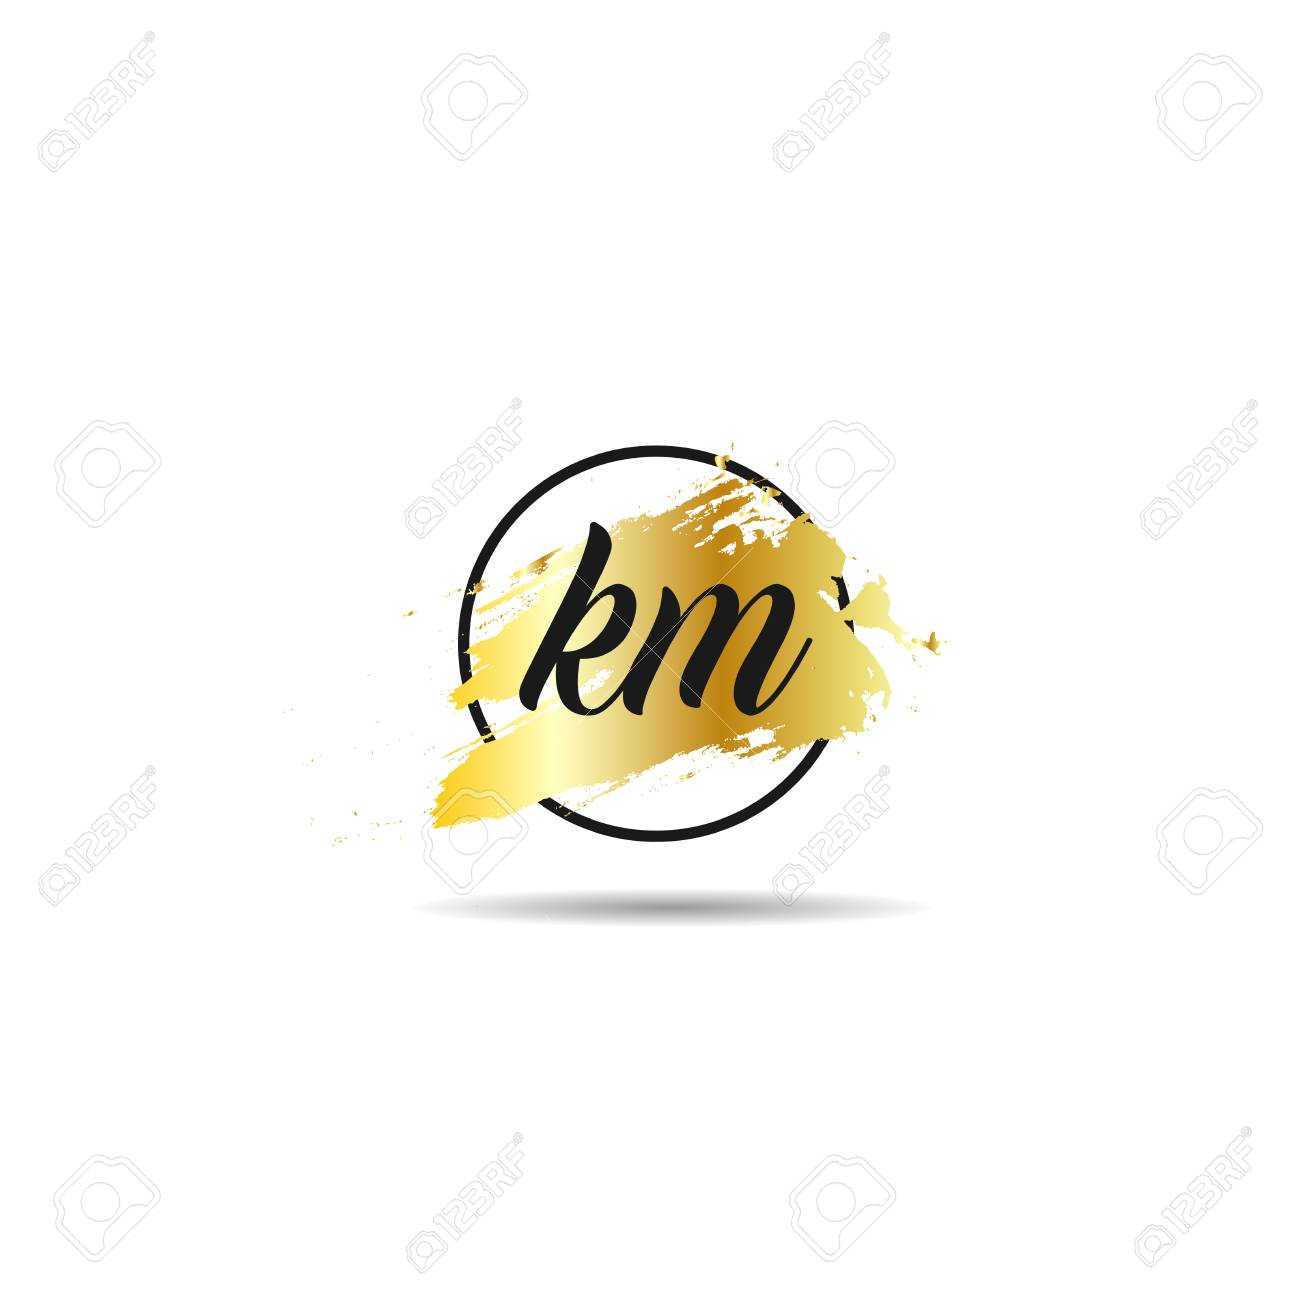 Initial Letter Km Logo Template Design Royalty Free Cliparts Vectors And Stock Illustration Image 109595516